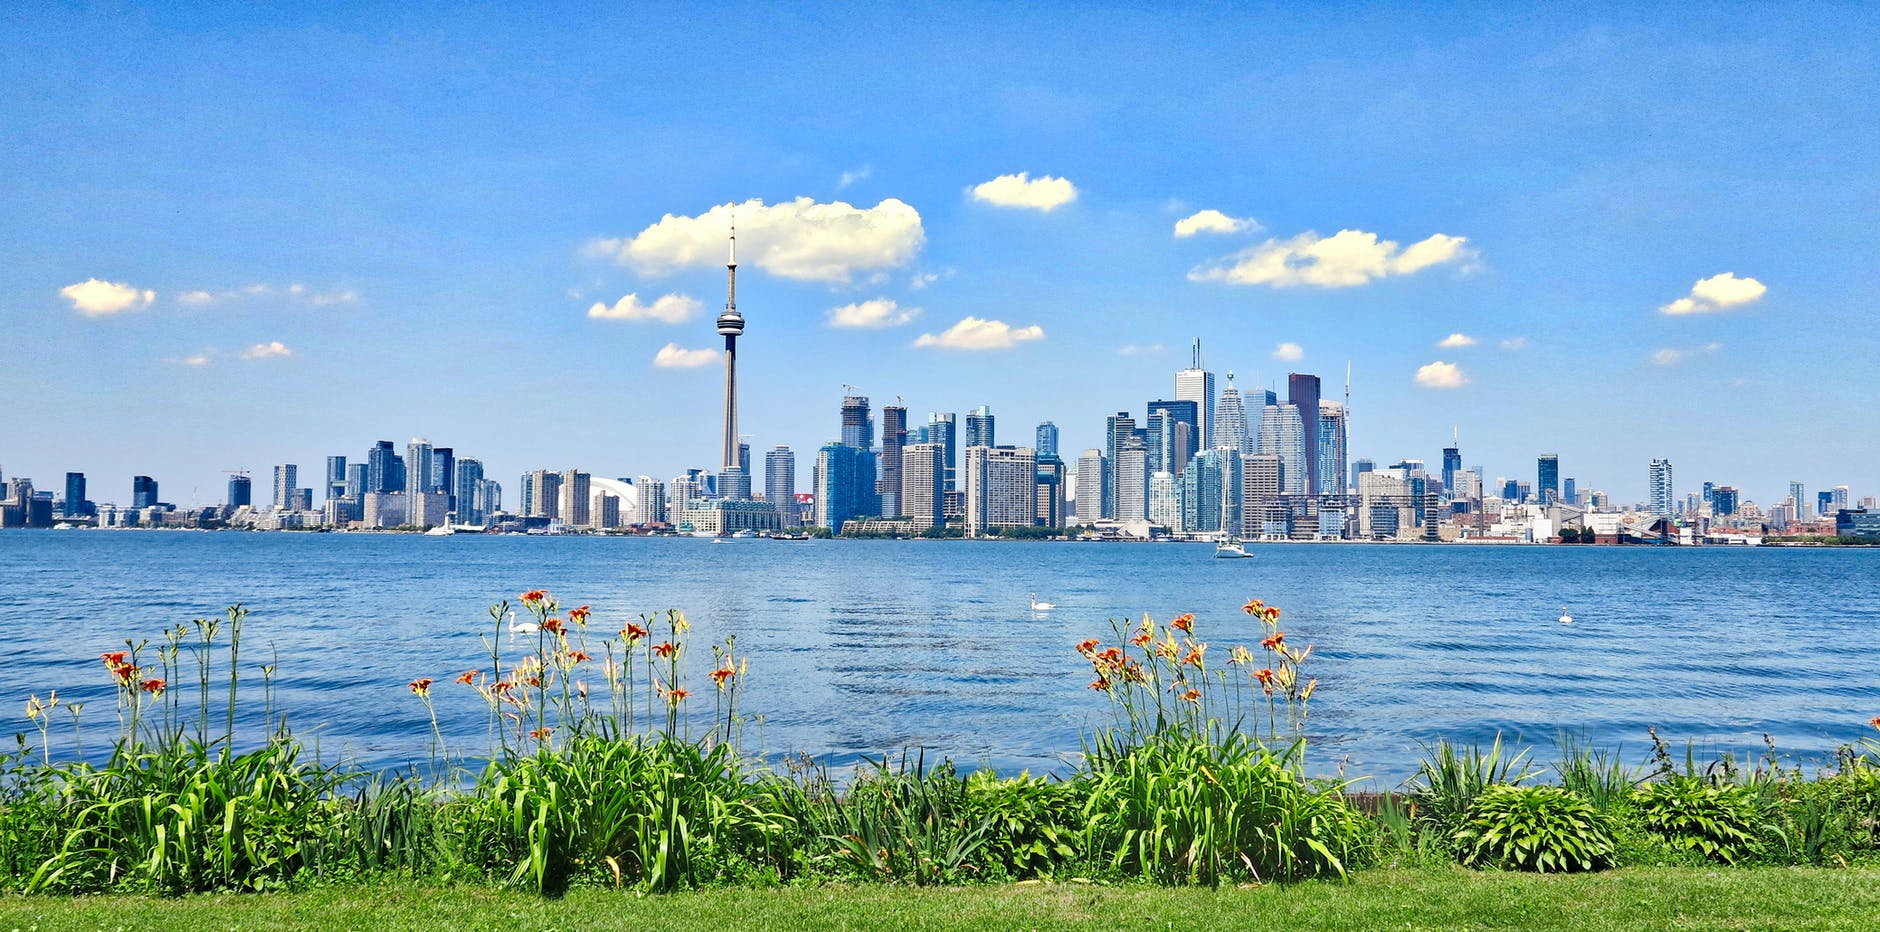 Vancouver is one of the most livable cities in Canada